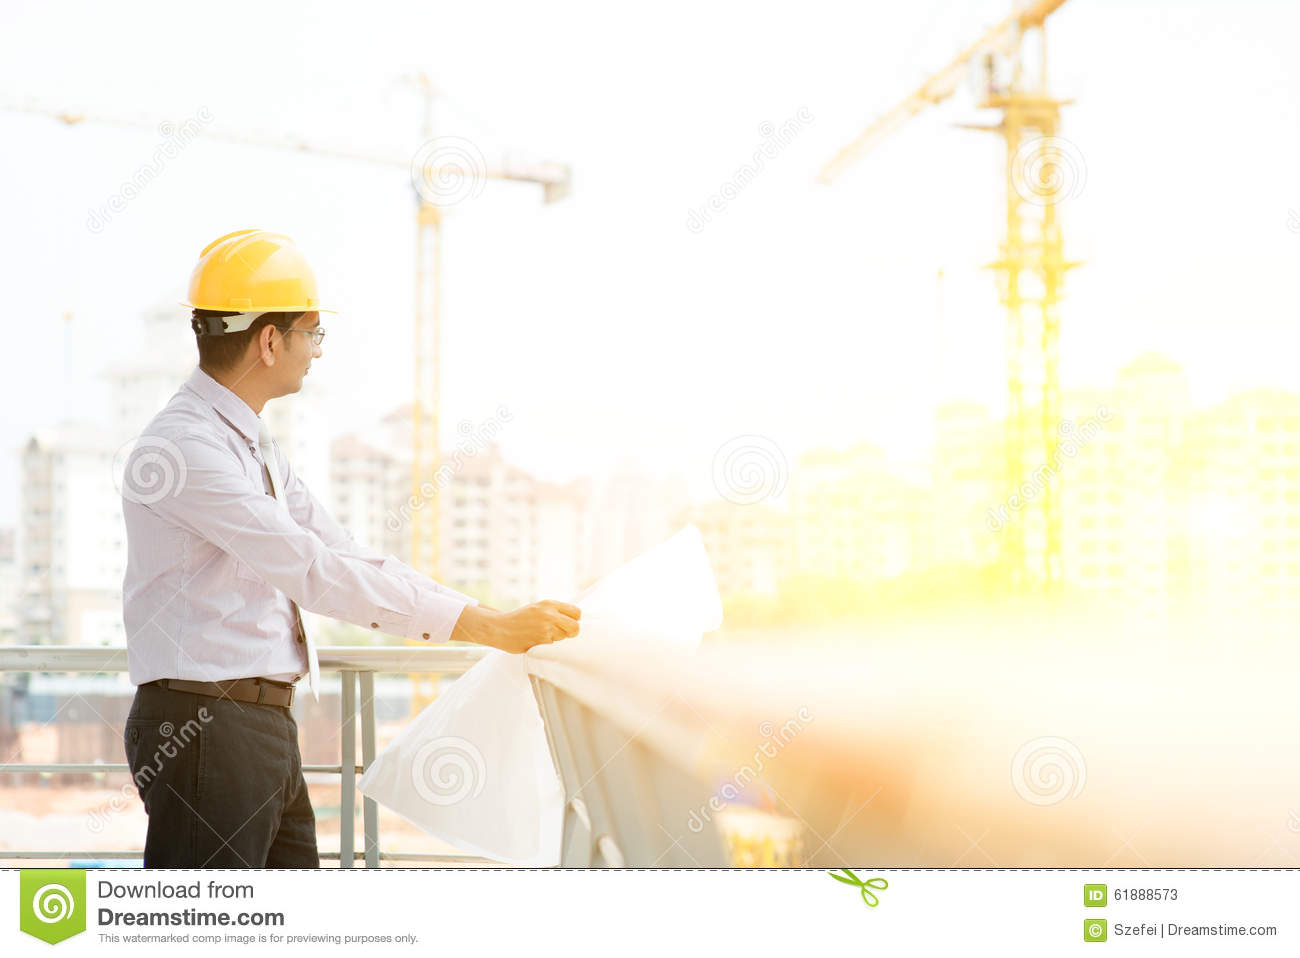 working in a local construction essay Free college essay sample about poor working conditions  and the construction industry with 18% follow it in the regional context, residents of the african  385% of local workers are employed in the jobs with poor.